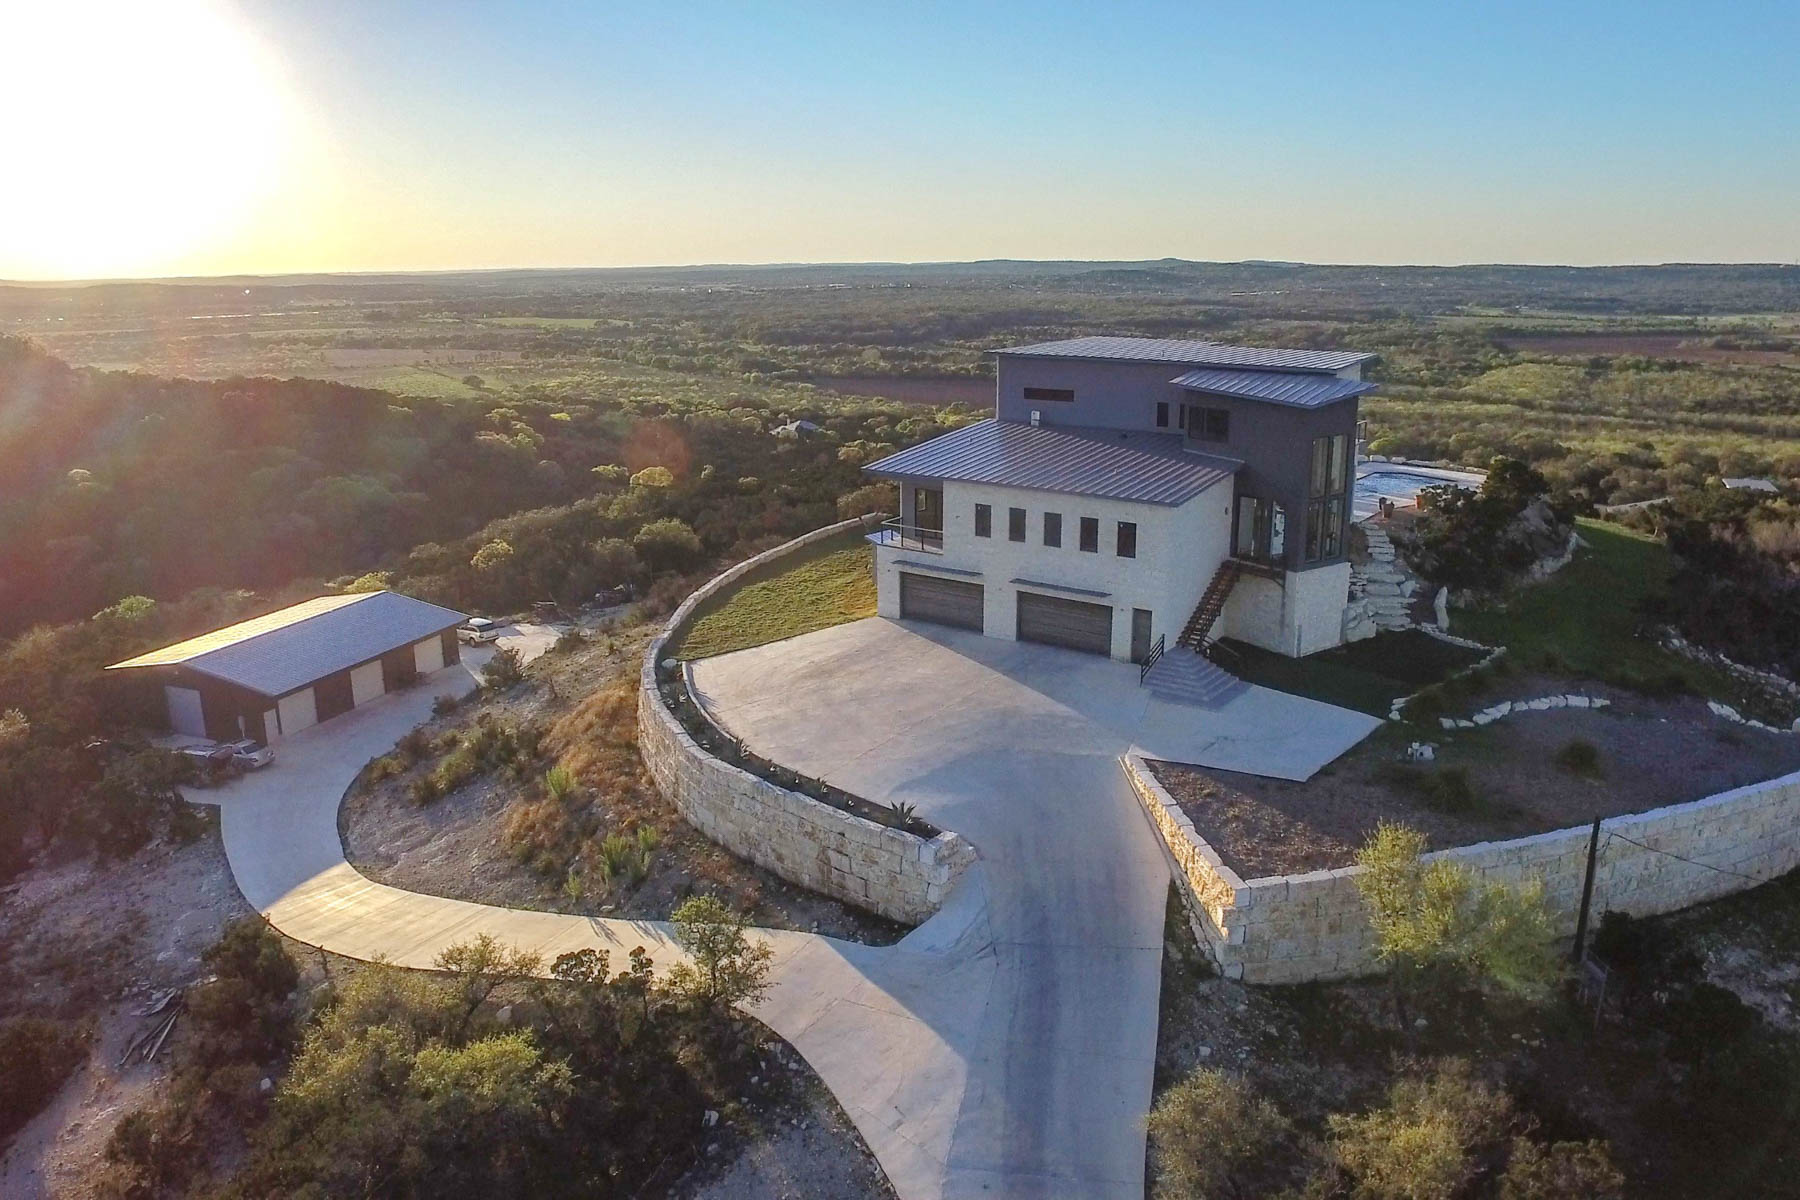 一戸建て のために 売買 アット Spectacular Architecture in Verde Mountain Estates 28565 Verde Mountain Trl Verde Mountain Estates, San Antonio, テキサス, 78261 アメリカ合衆国